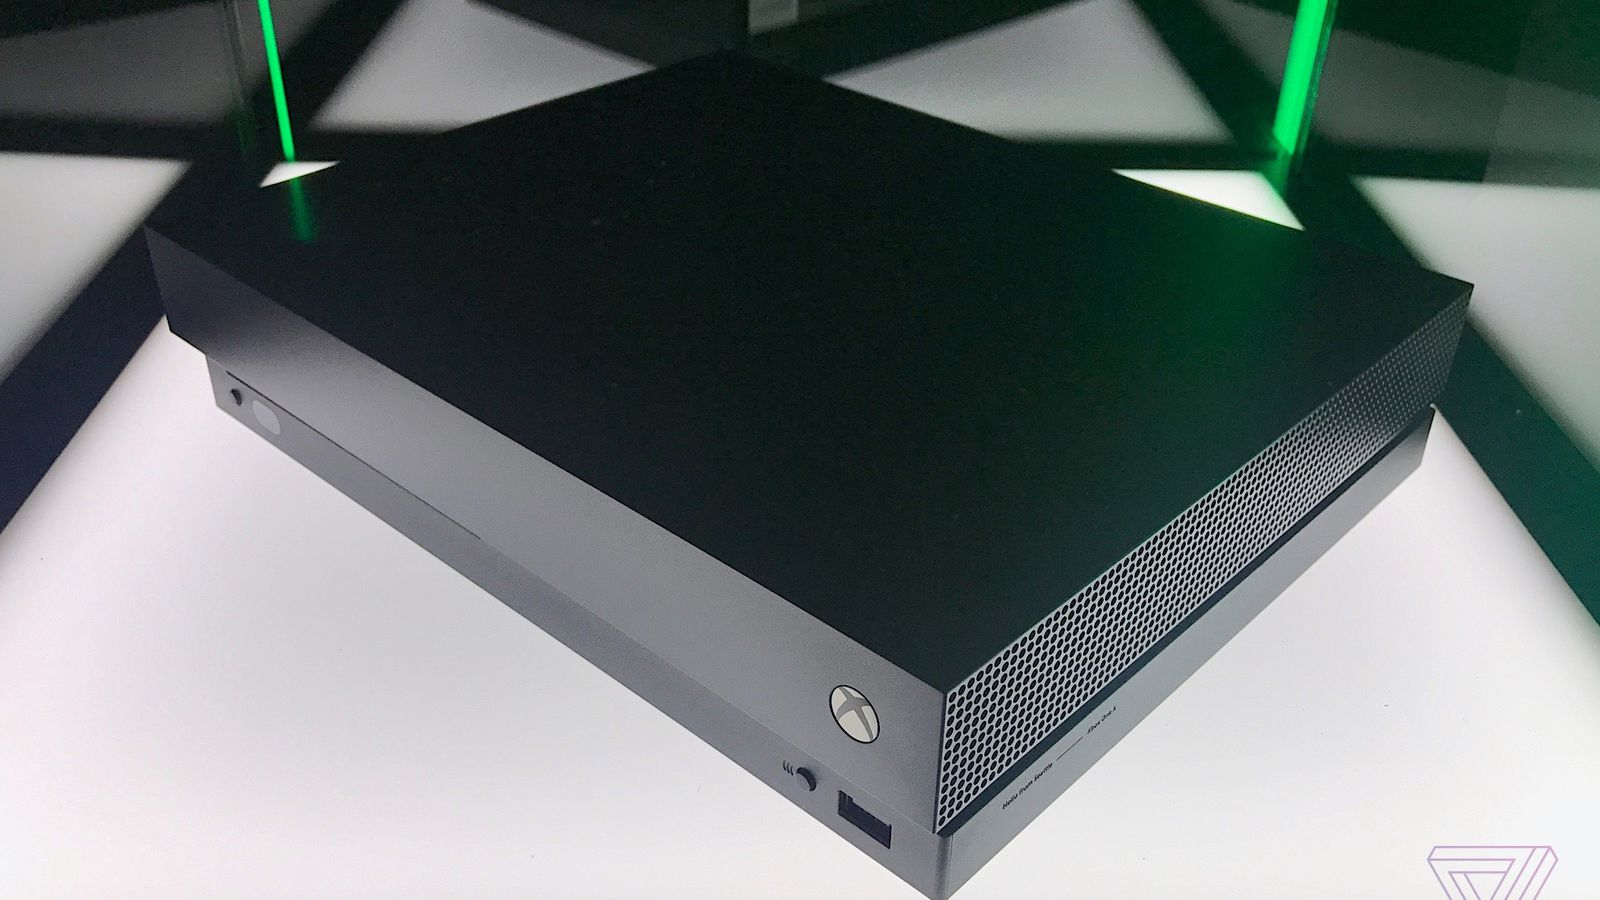 The Xbox One X probably isn